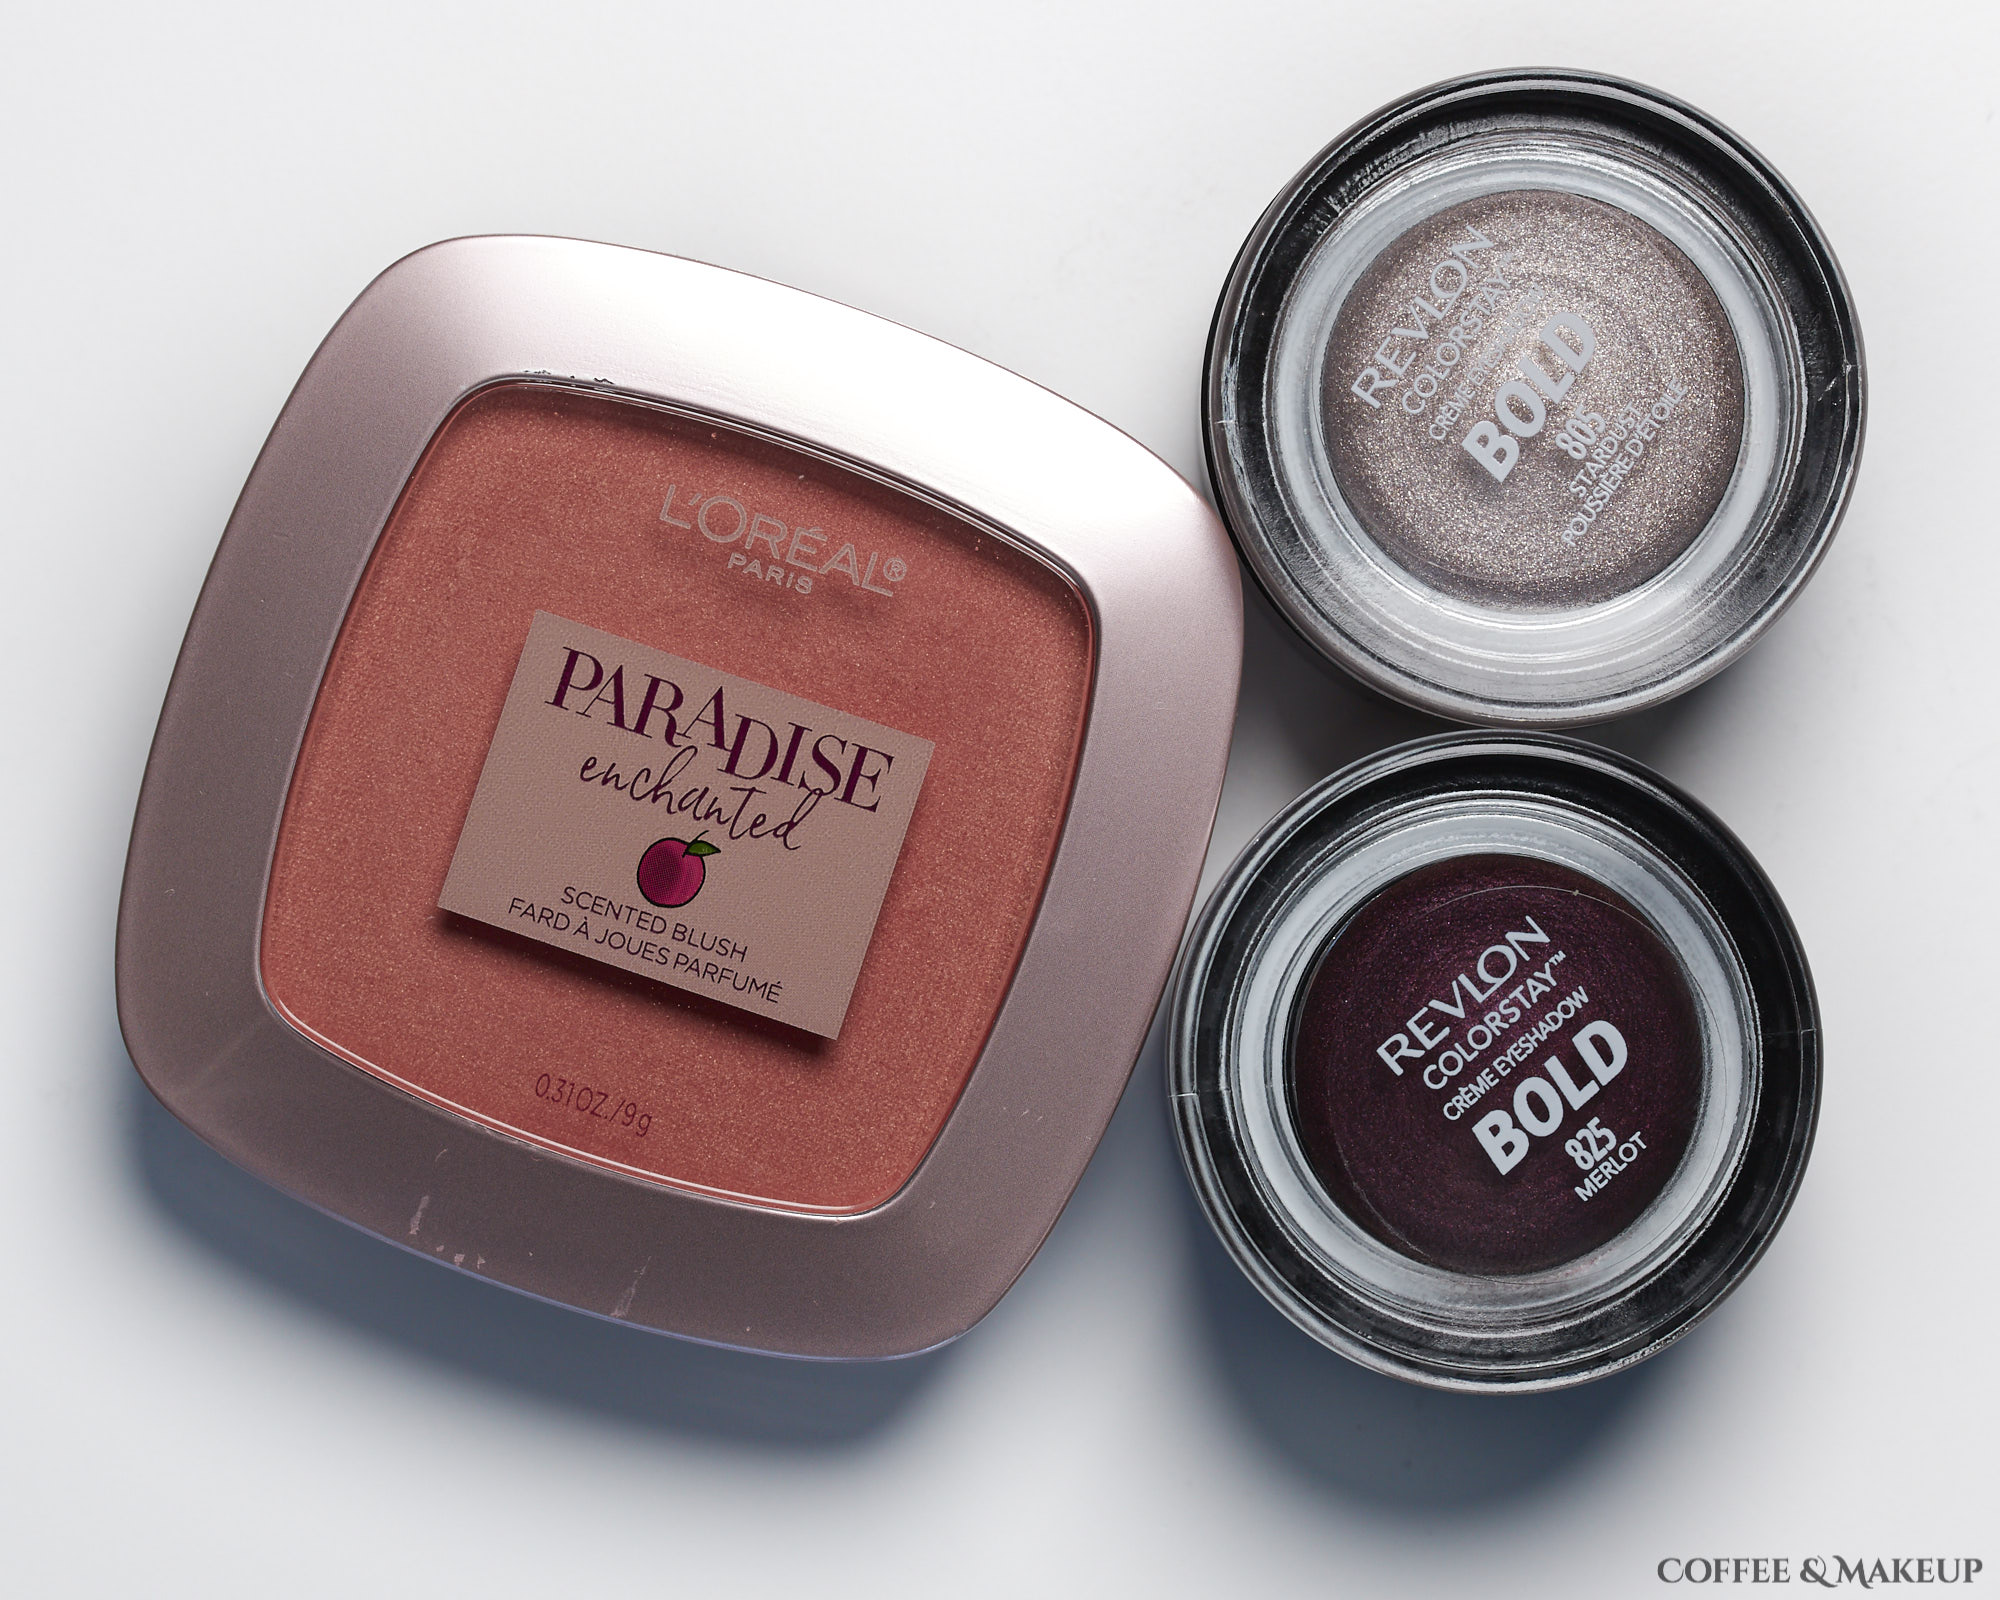 Loreal Enchanted Paradise Scented Blush in Fantastical and Revlon Bold Creme Eyeshadows in Stardust and Merlot